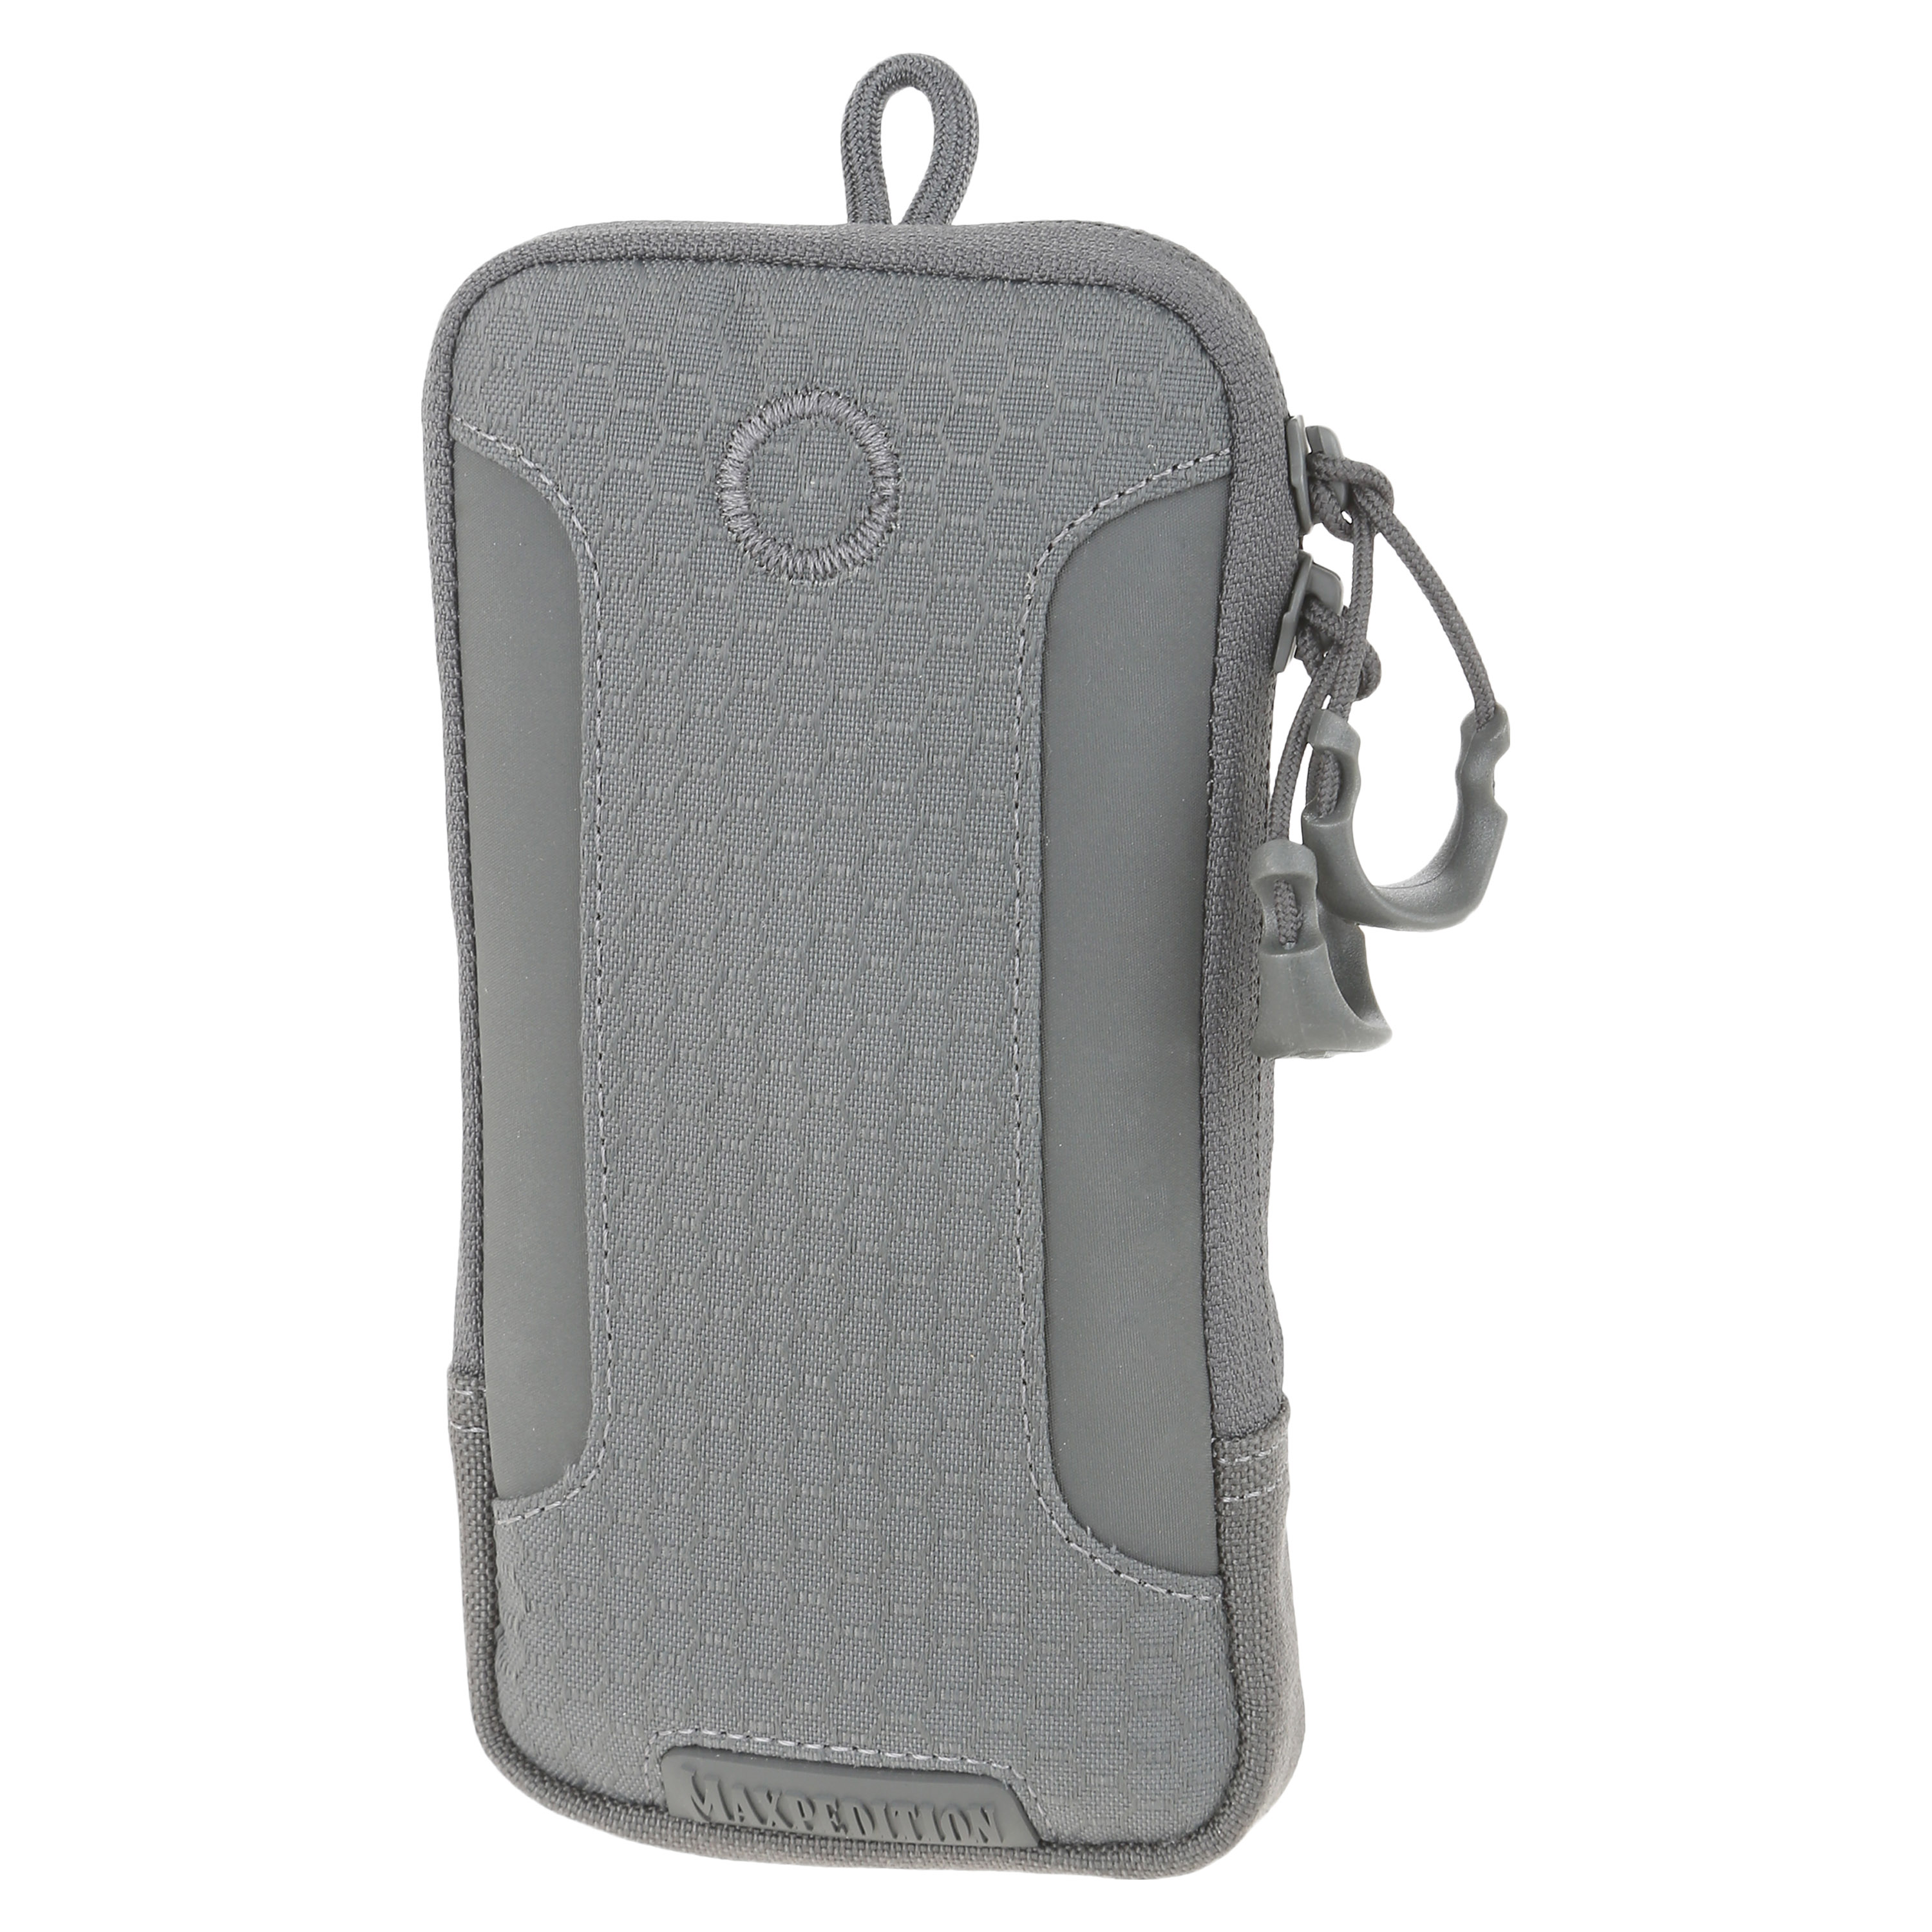 Funda Maxpedition iPhone 6/6S/7 Plus Pouch gris